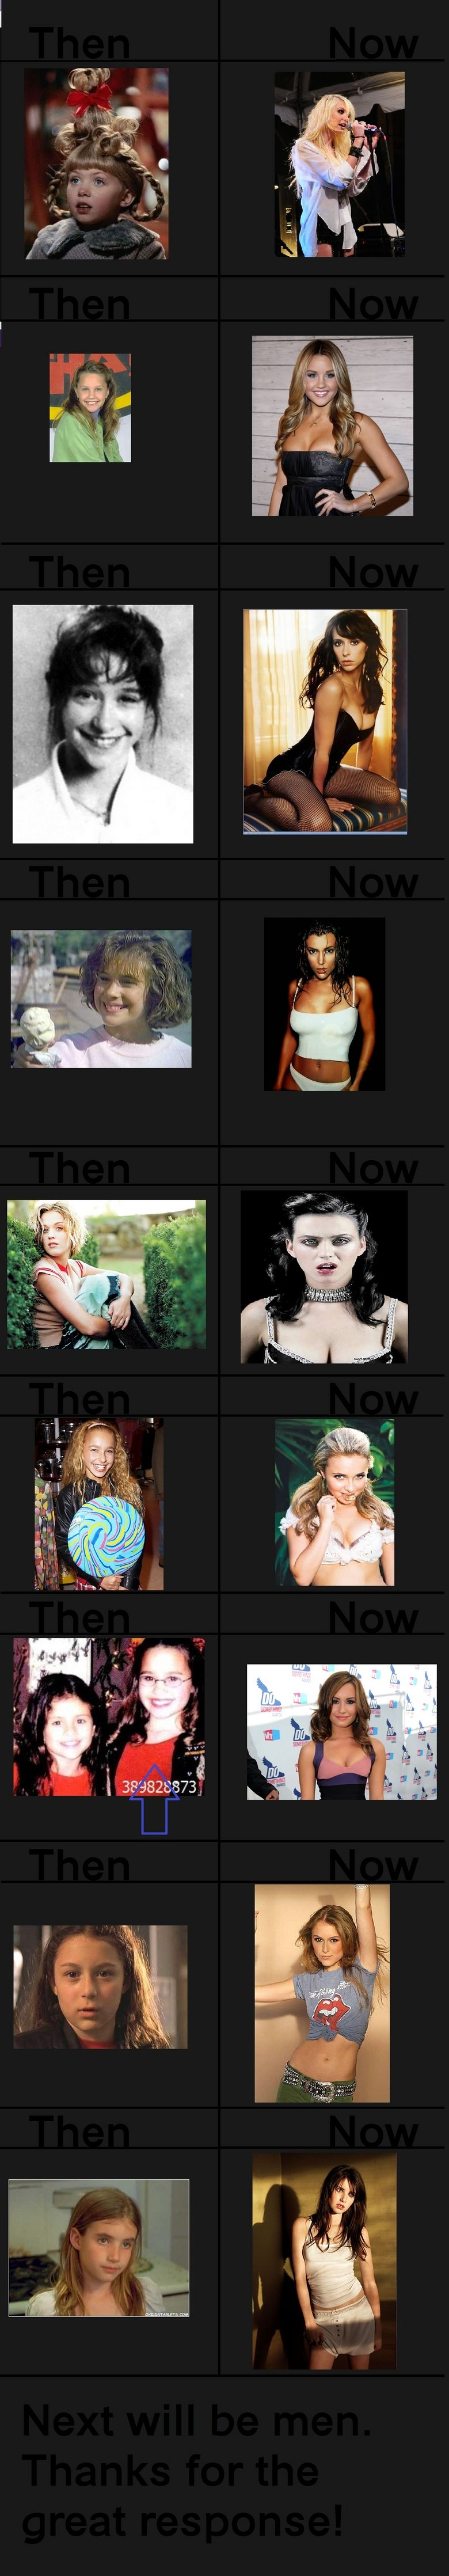 """Then and Now 3. Next will be men. Enjoy ^^<br /> <a href=""""pictures/1506683/Then+and+Now+Females/"""" target=blank>funnyjunk.com/funnypictures"""